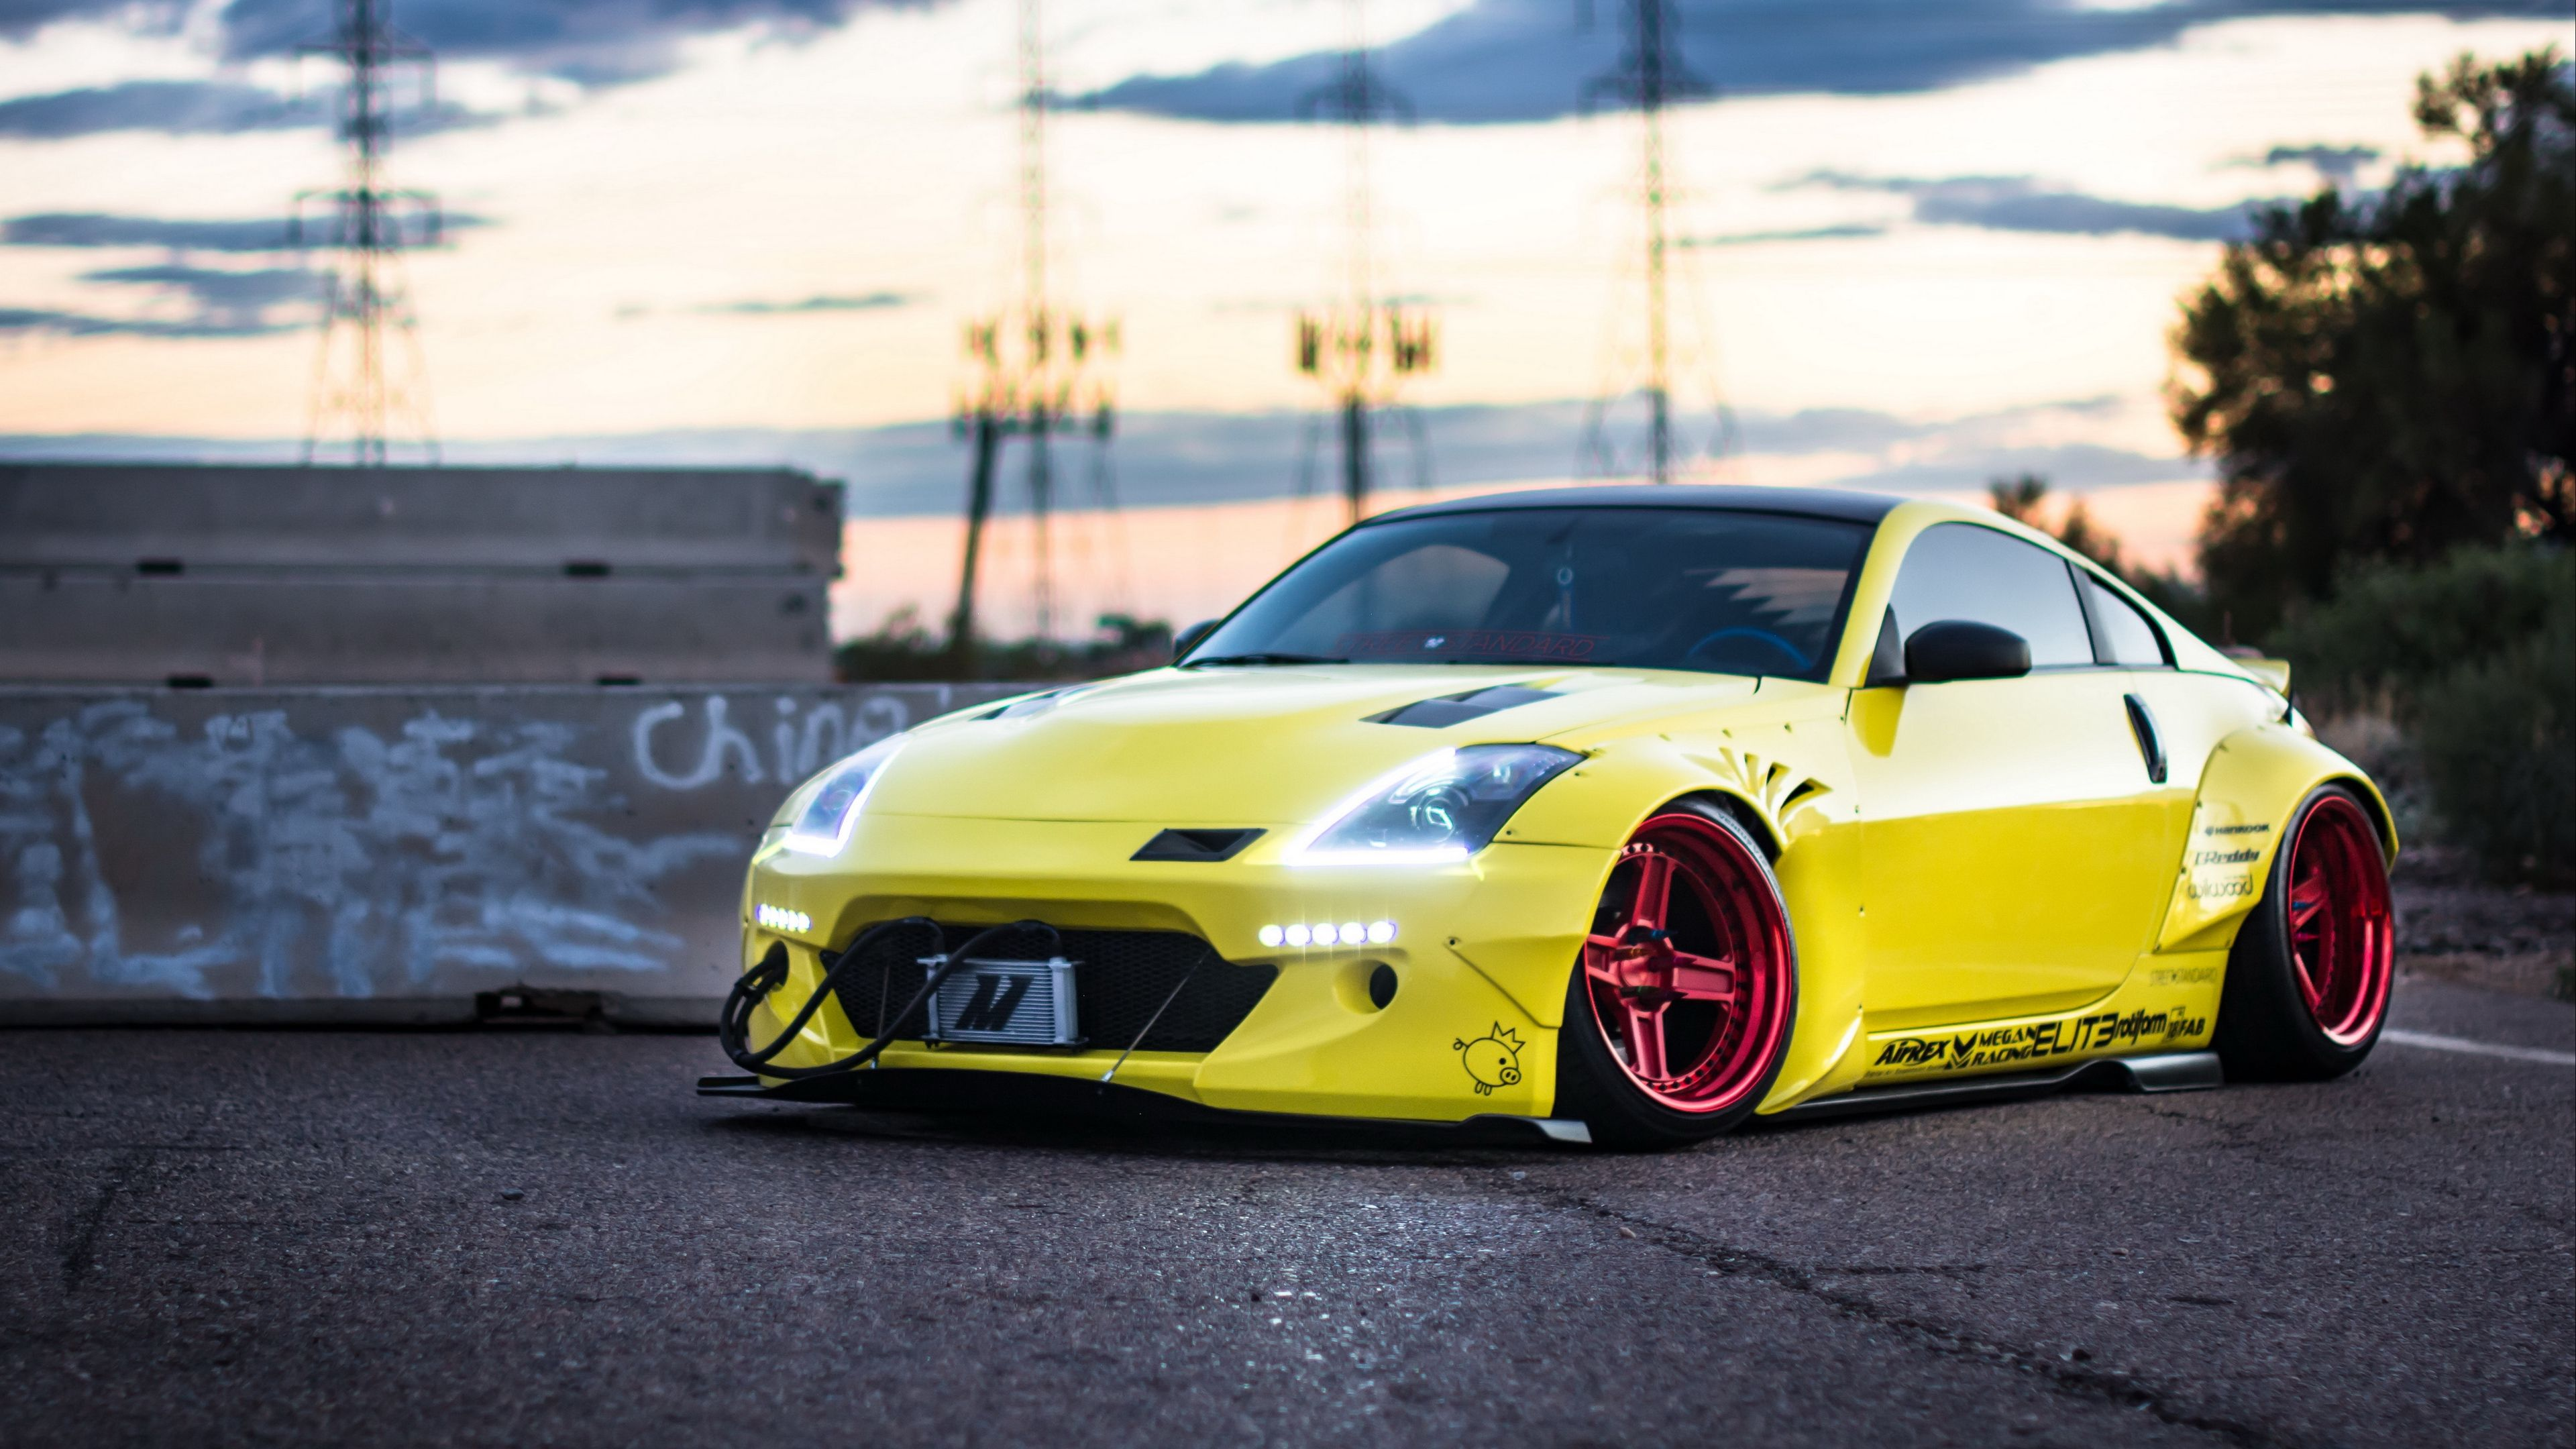 Nissan 350z Yellow Side View 4k Yellow Side View Nissan 350z Nissan 350z Nissan Car Wallpapers